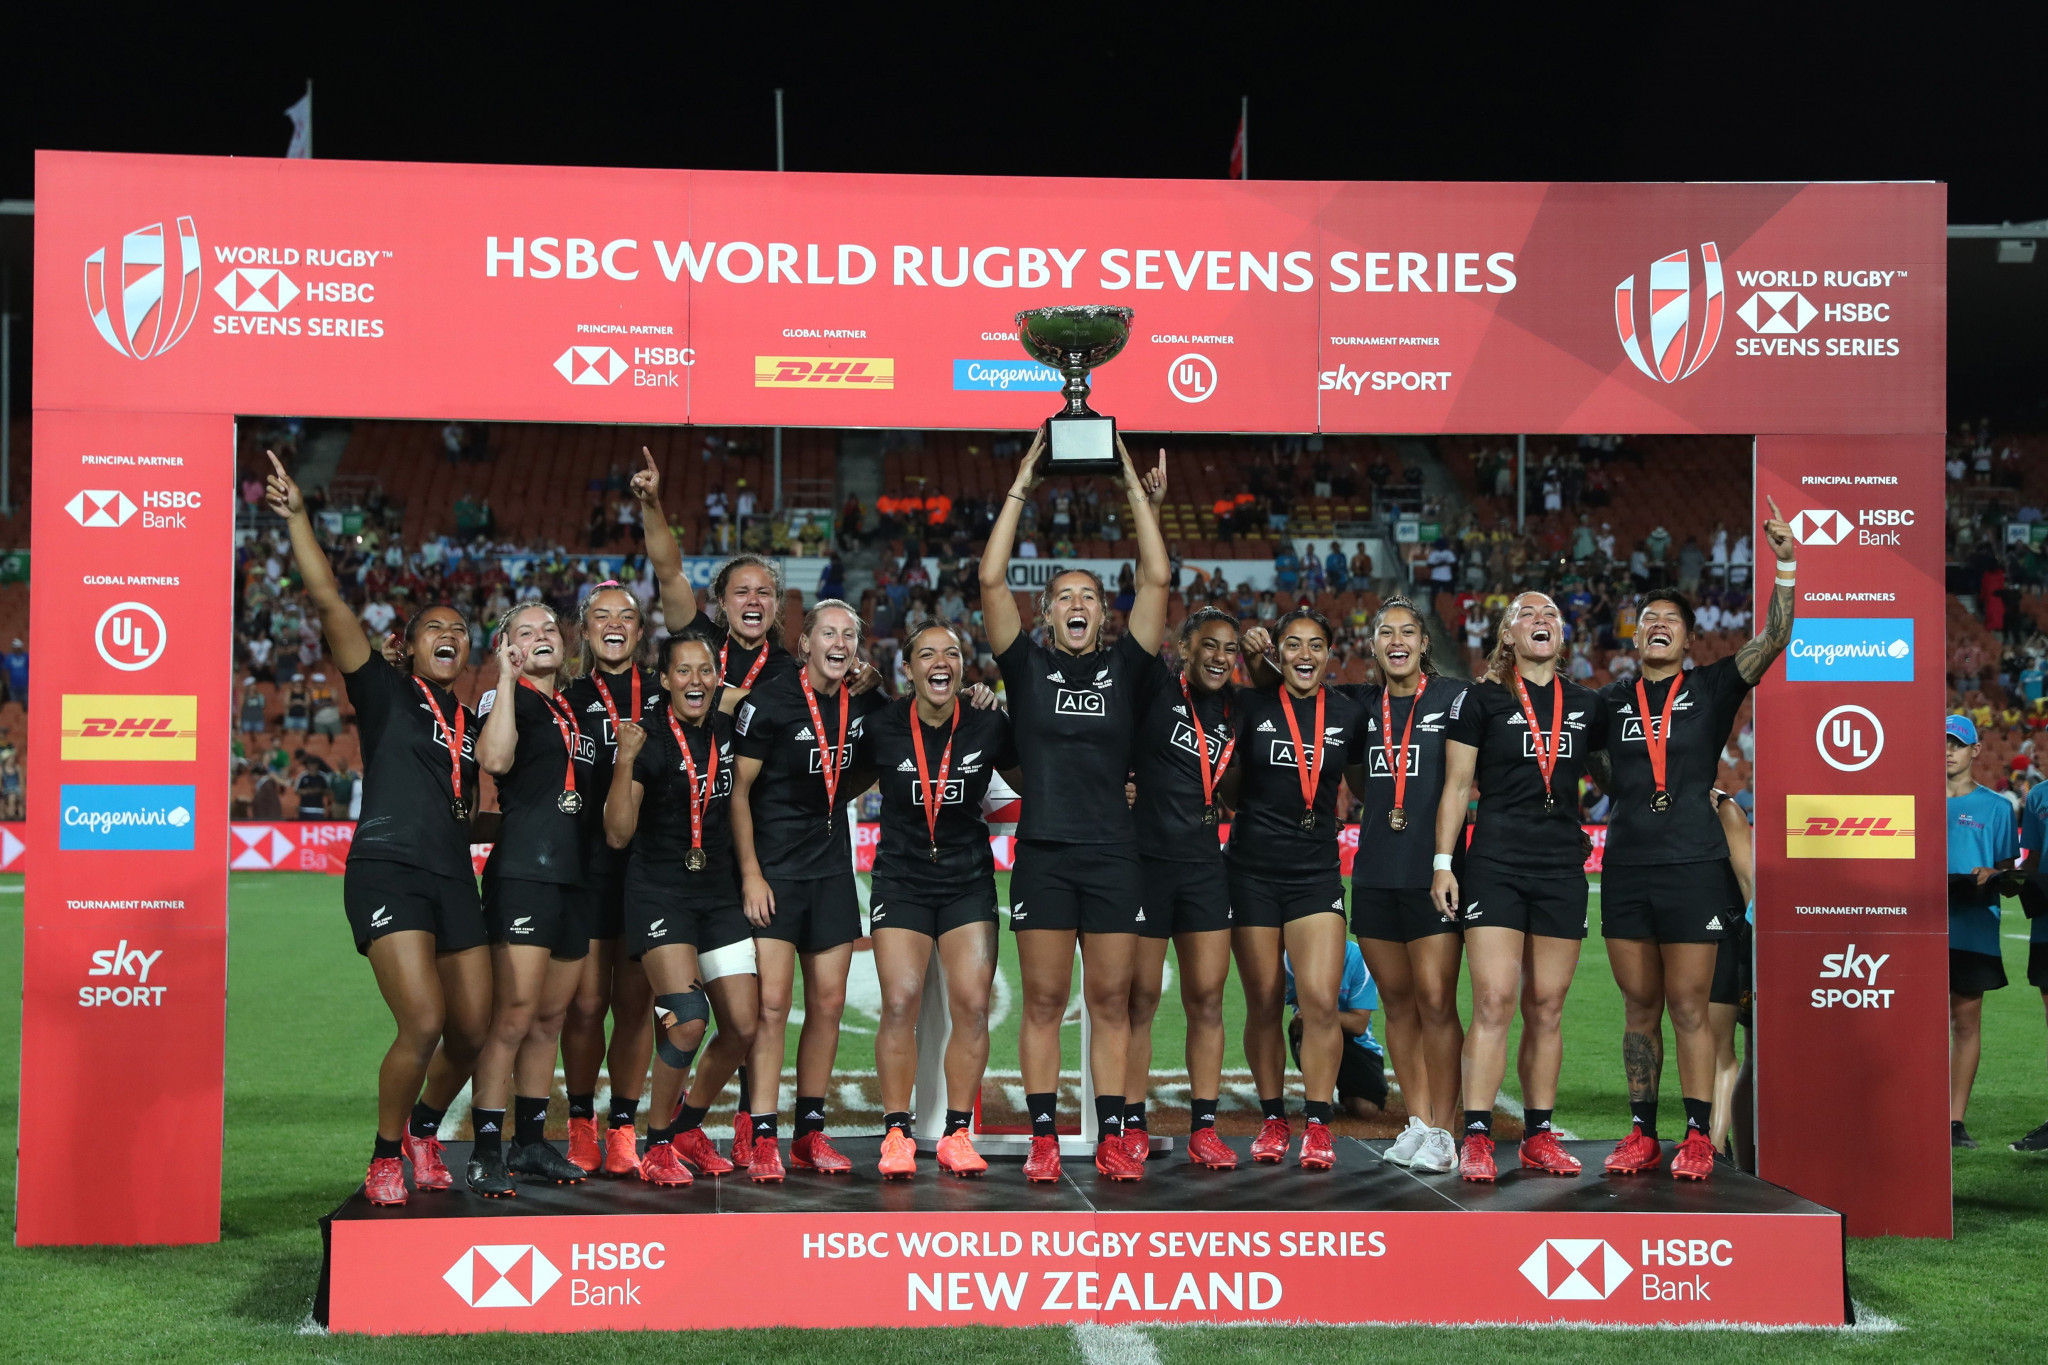 New Zealand take third consecutive World Rugby Women's Sevens Series title in Hamilton